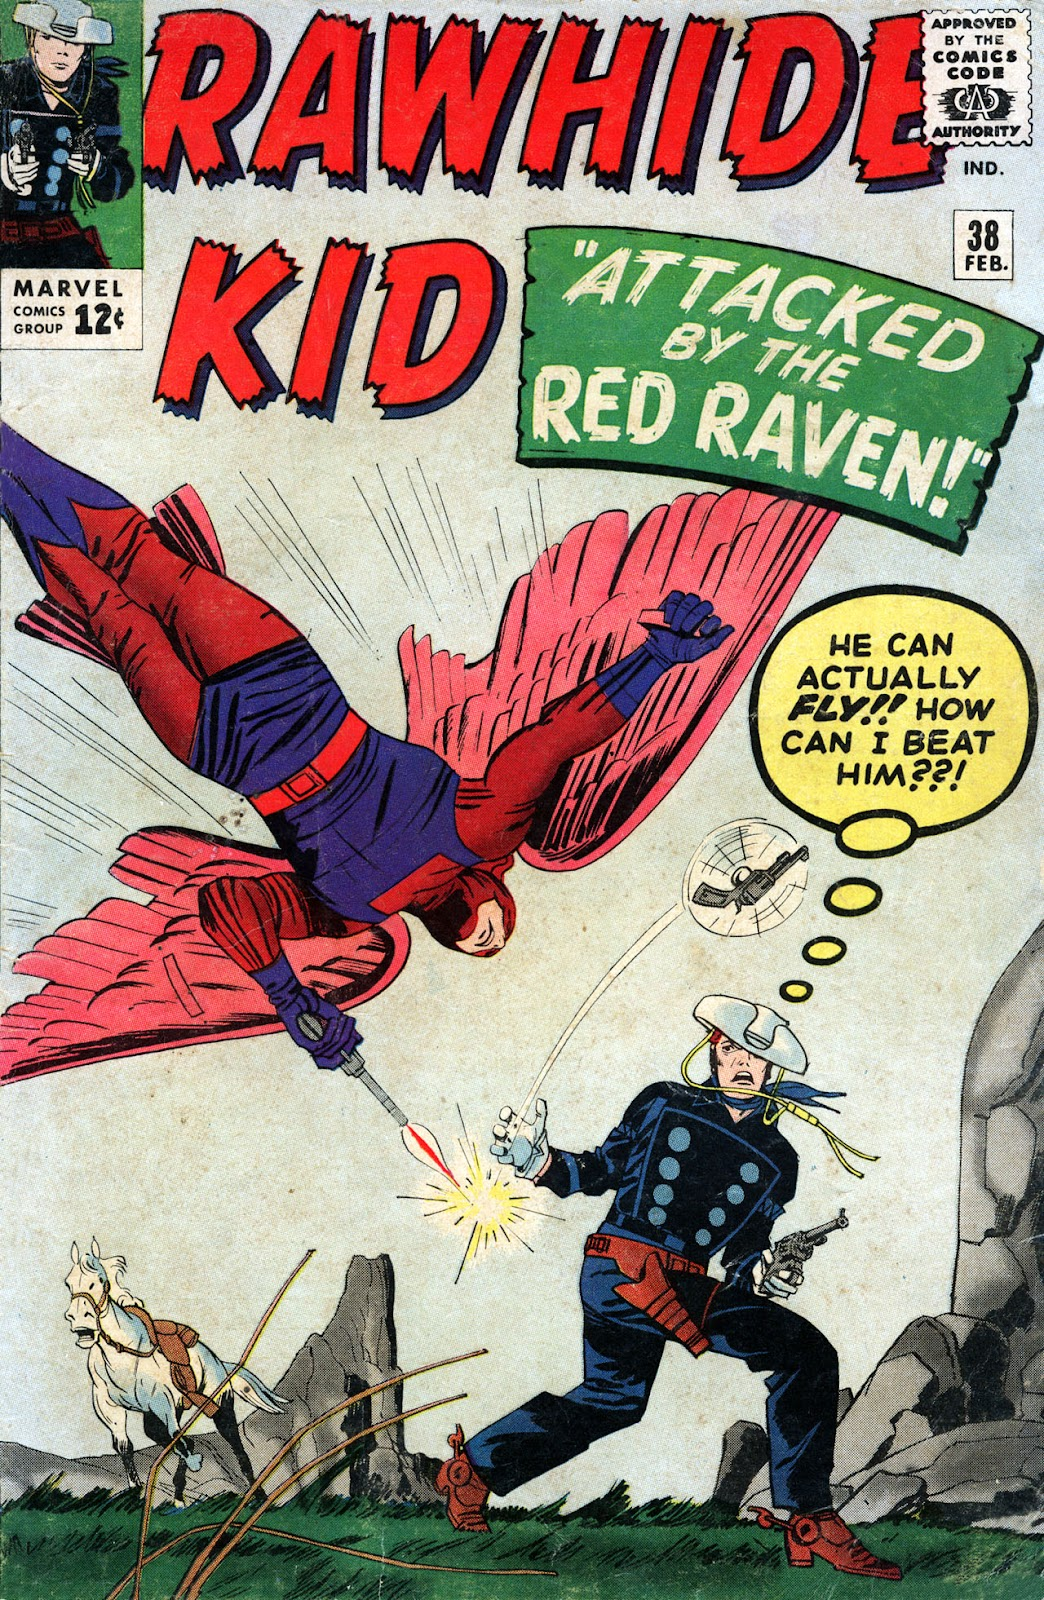 The Rawhide Kid (1955) issue 38 - Page 1